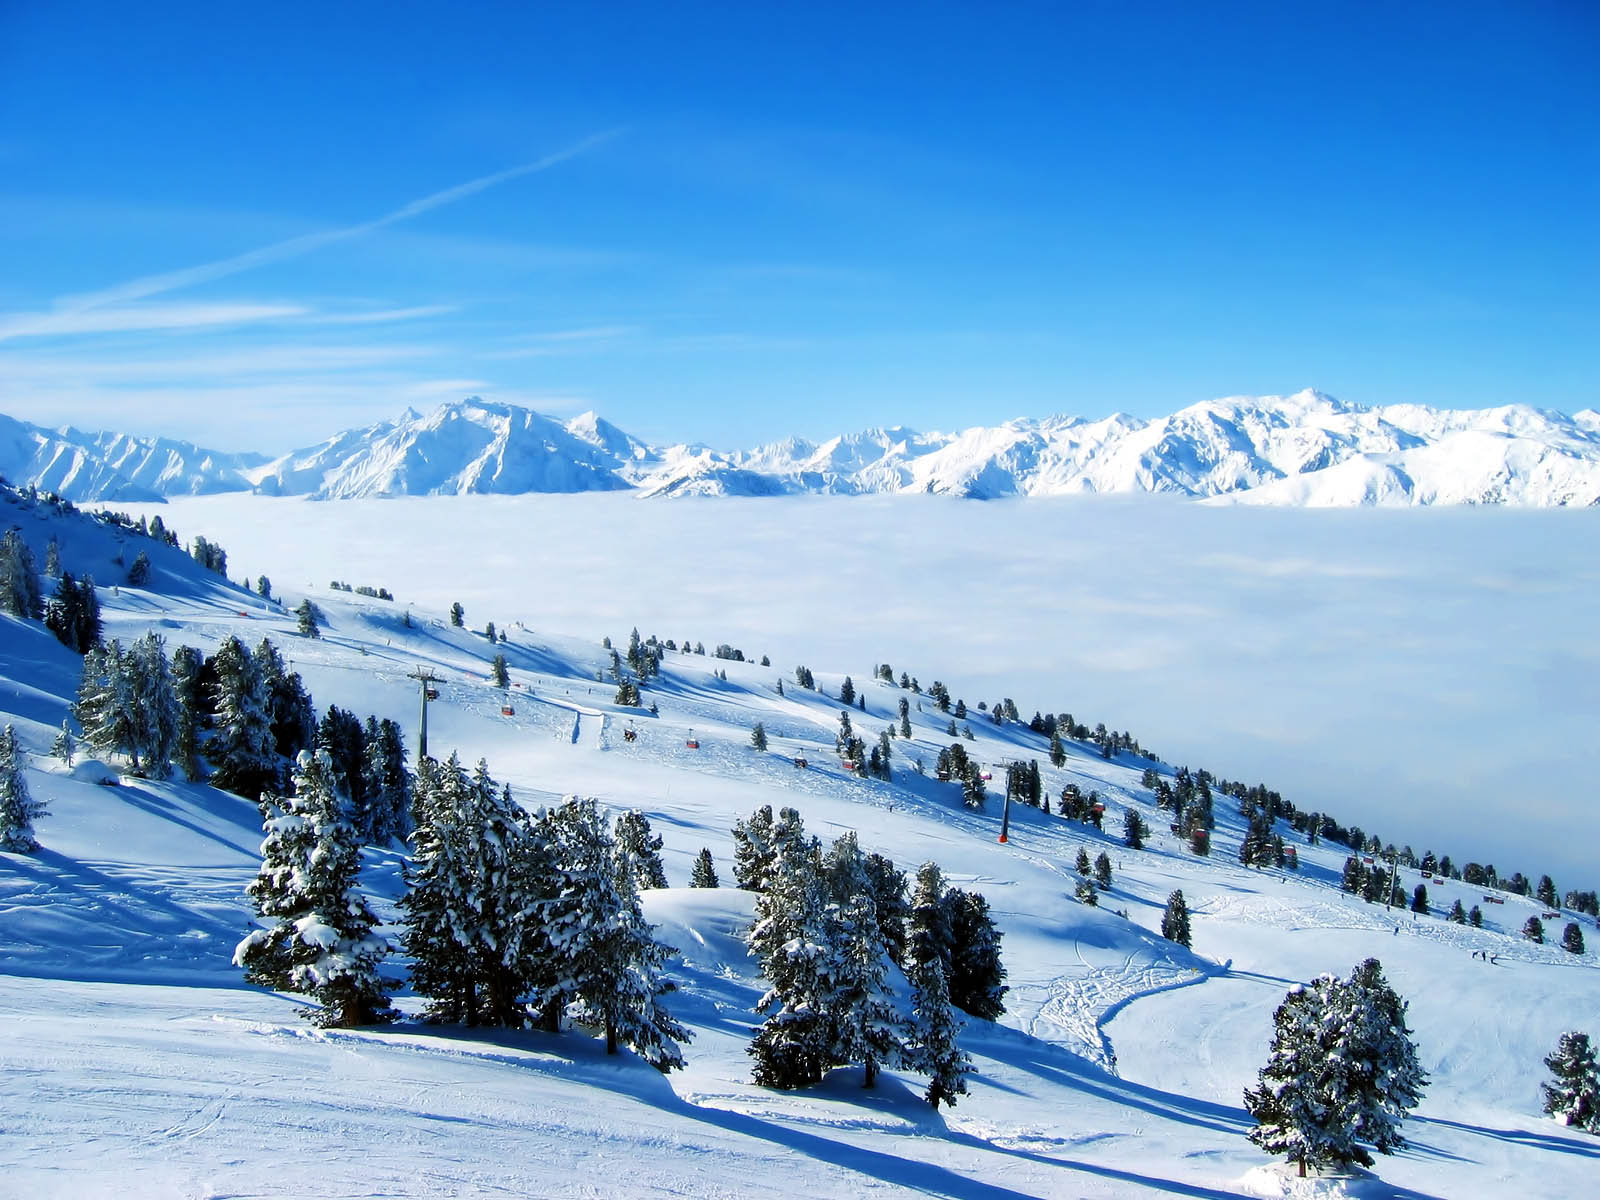 Tag Winter Backgrounds Wallpapers Photos Picturesand Images for 1600x1200